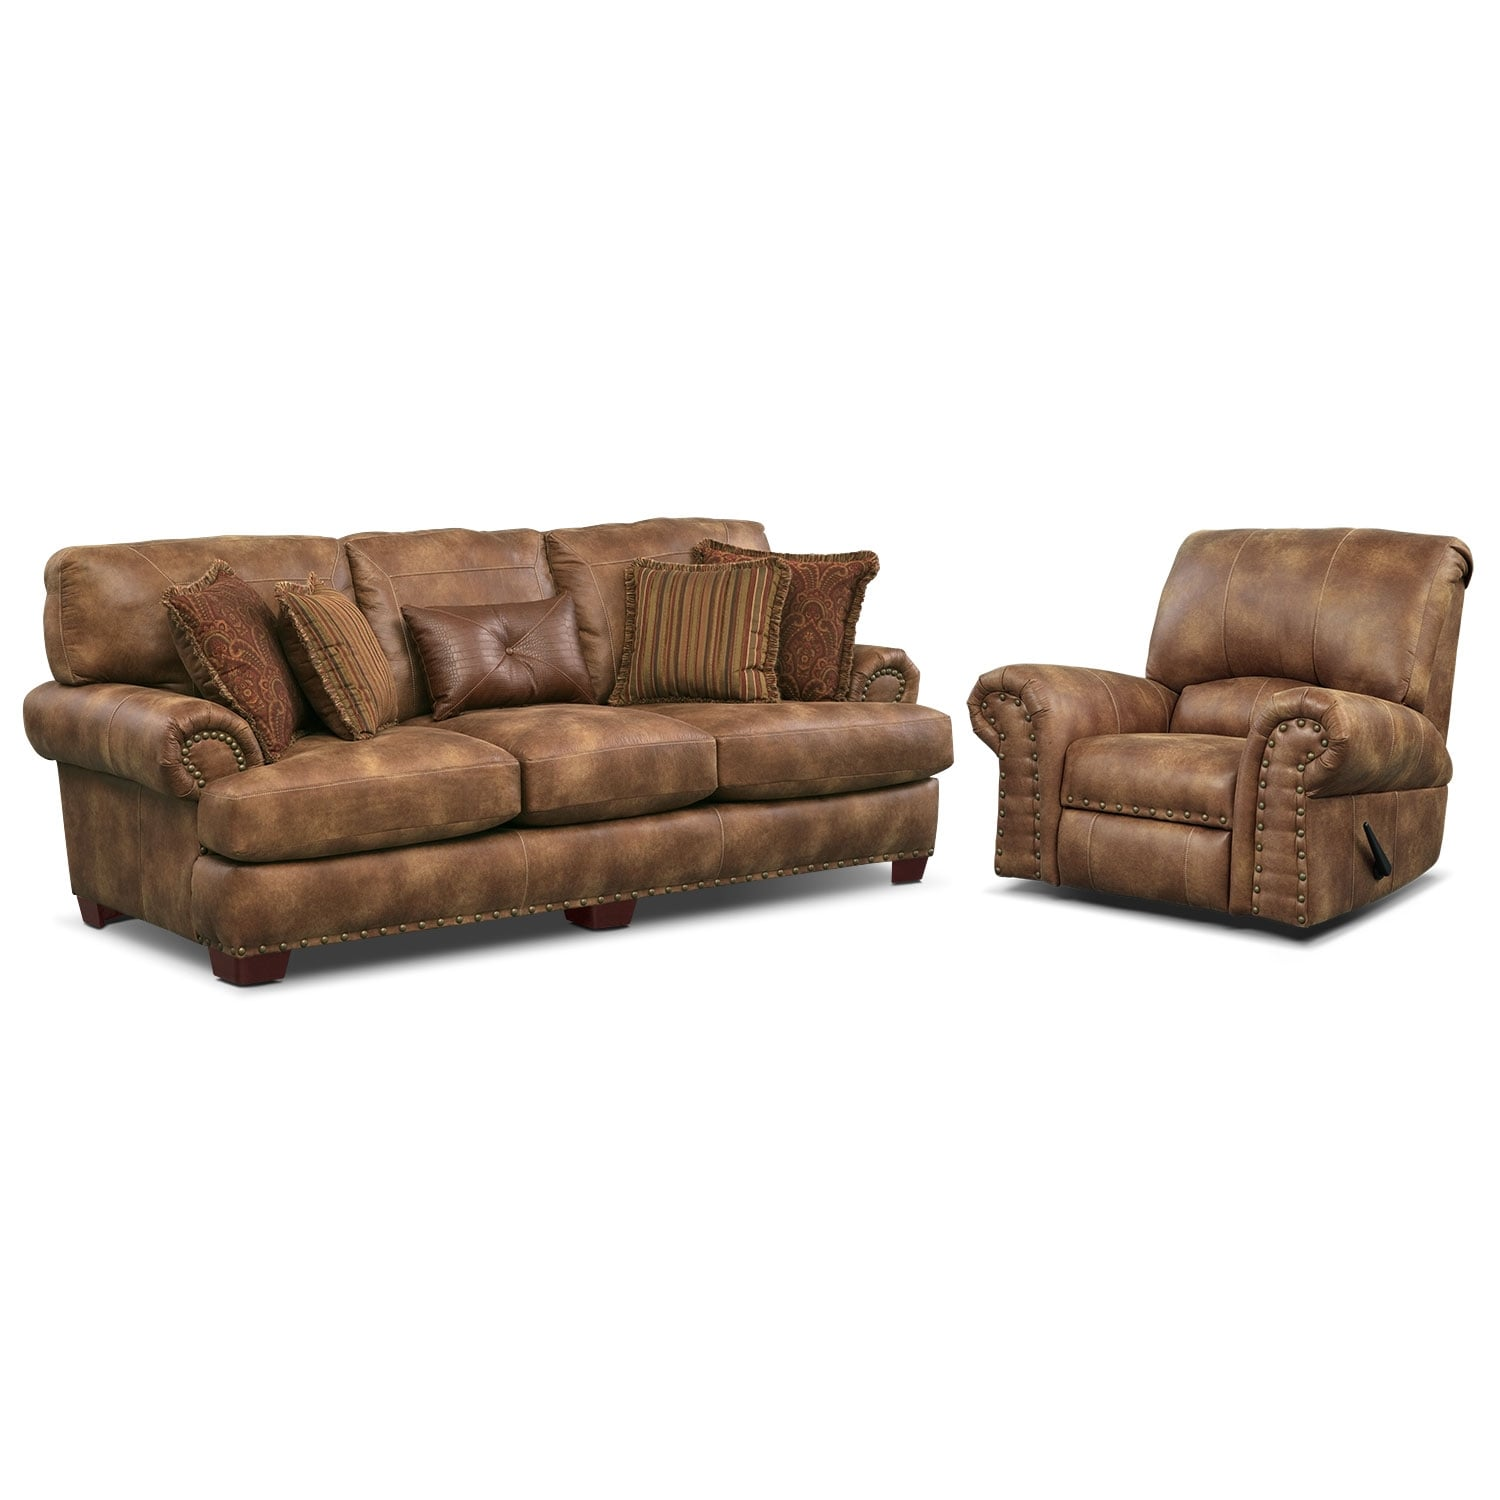 Living Room Furniture - Burlington Sofa and Recliner Set - Cognac